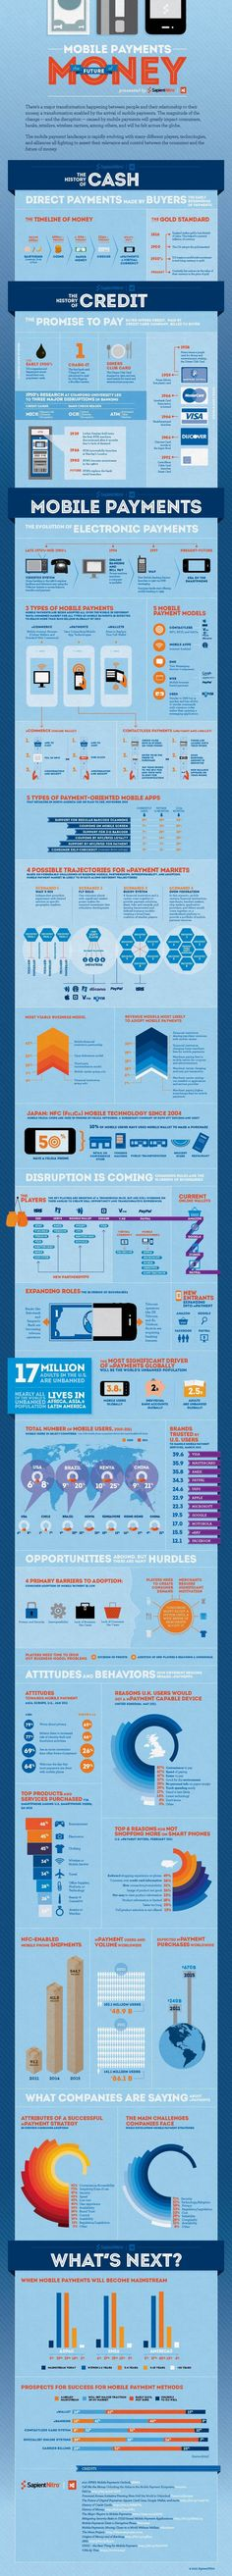 The mobile payment landscape is rapidly evolving, with many different players and technologies. This info-graphic explores consumers attitudes and behaviors, what types of products are most often purchased via m-commerce, and what the barriers are for use (among both consumers and clients).